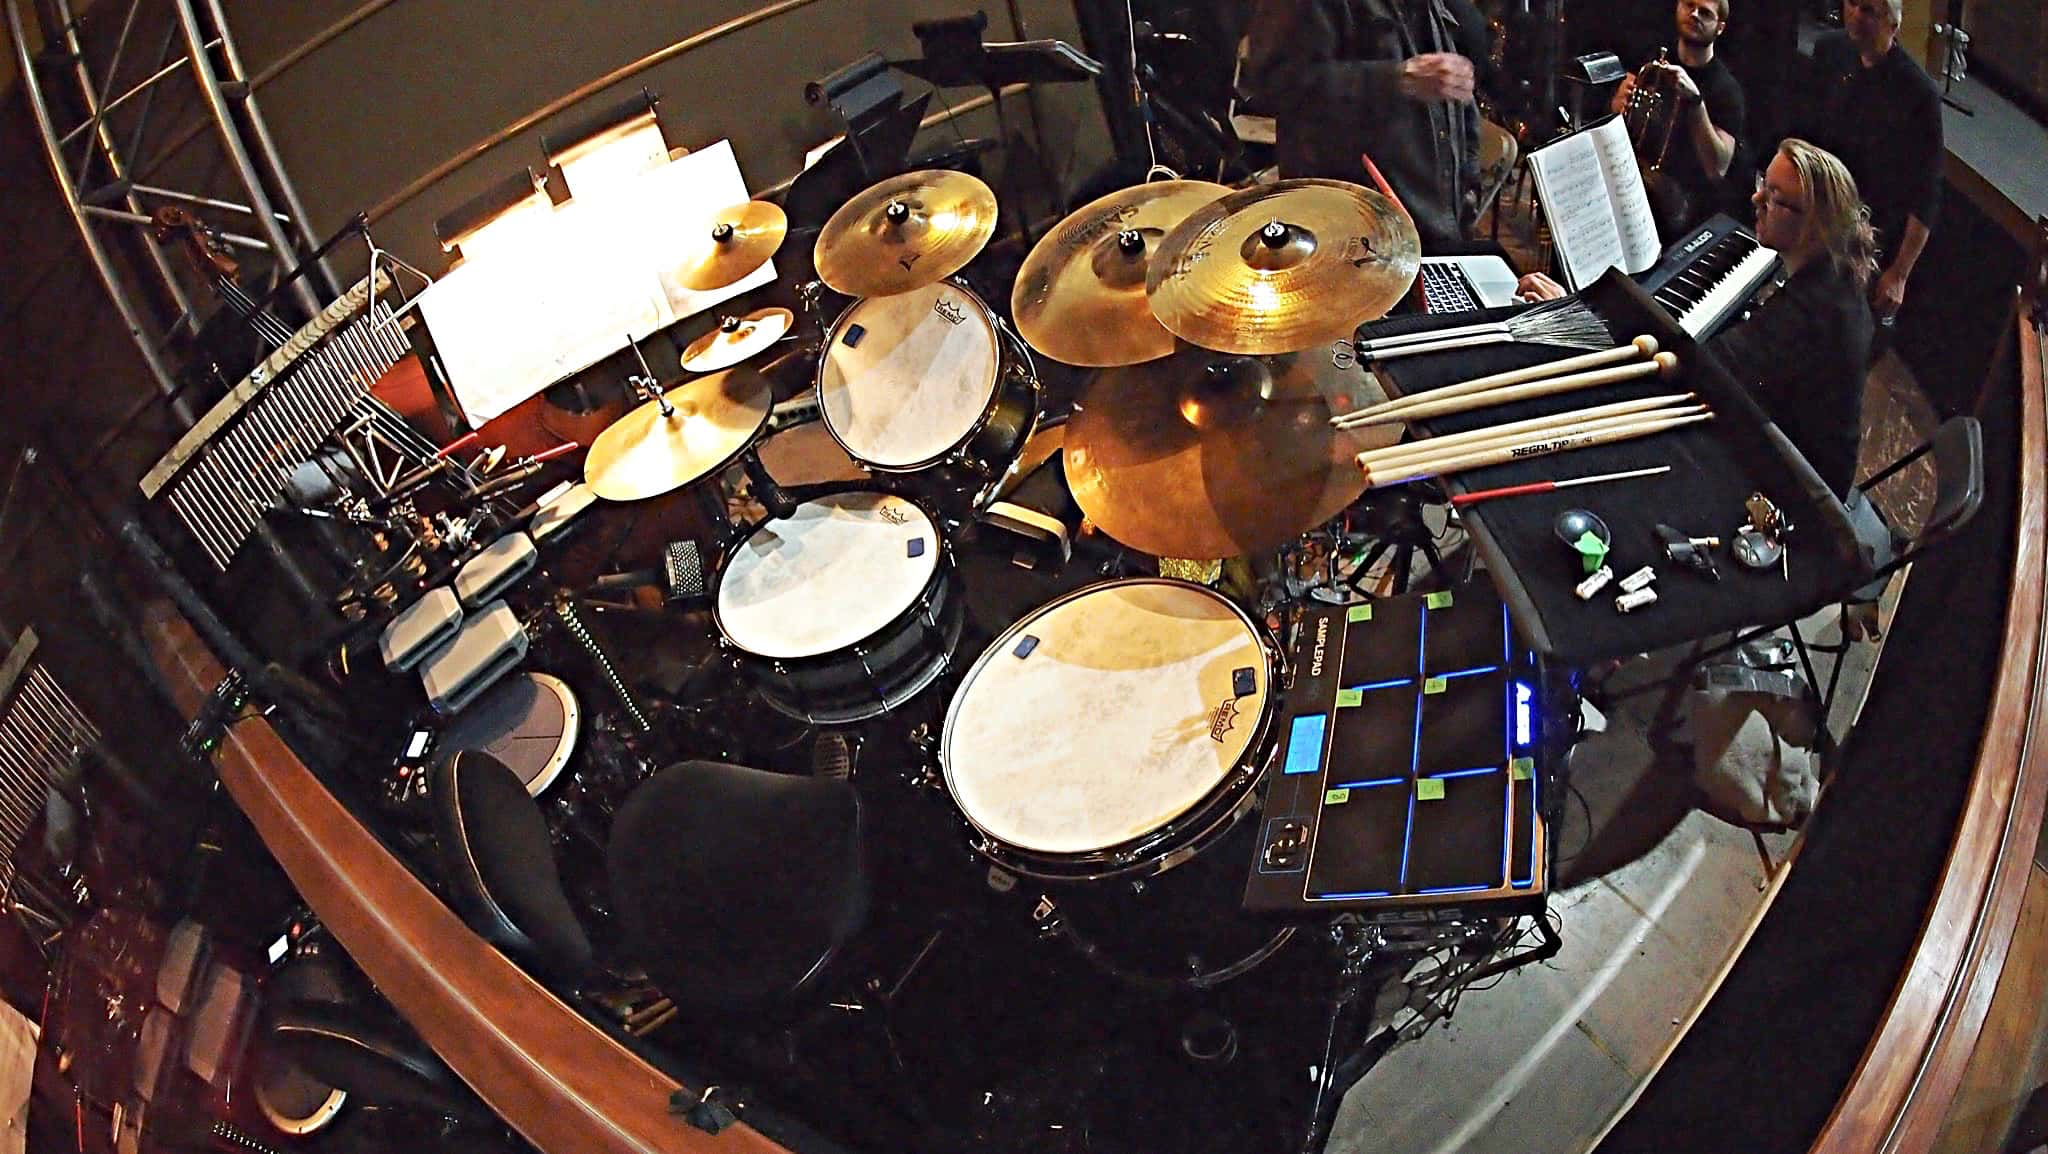 Scot Sexton's combined book setup for the Seattle Musical Theaters production of Kiss Me Kate in Seattle, Washington.